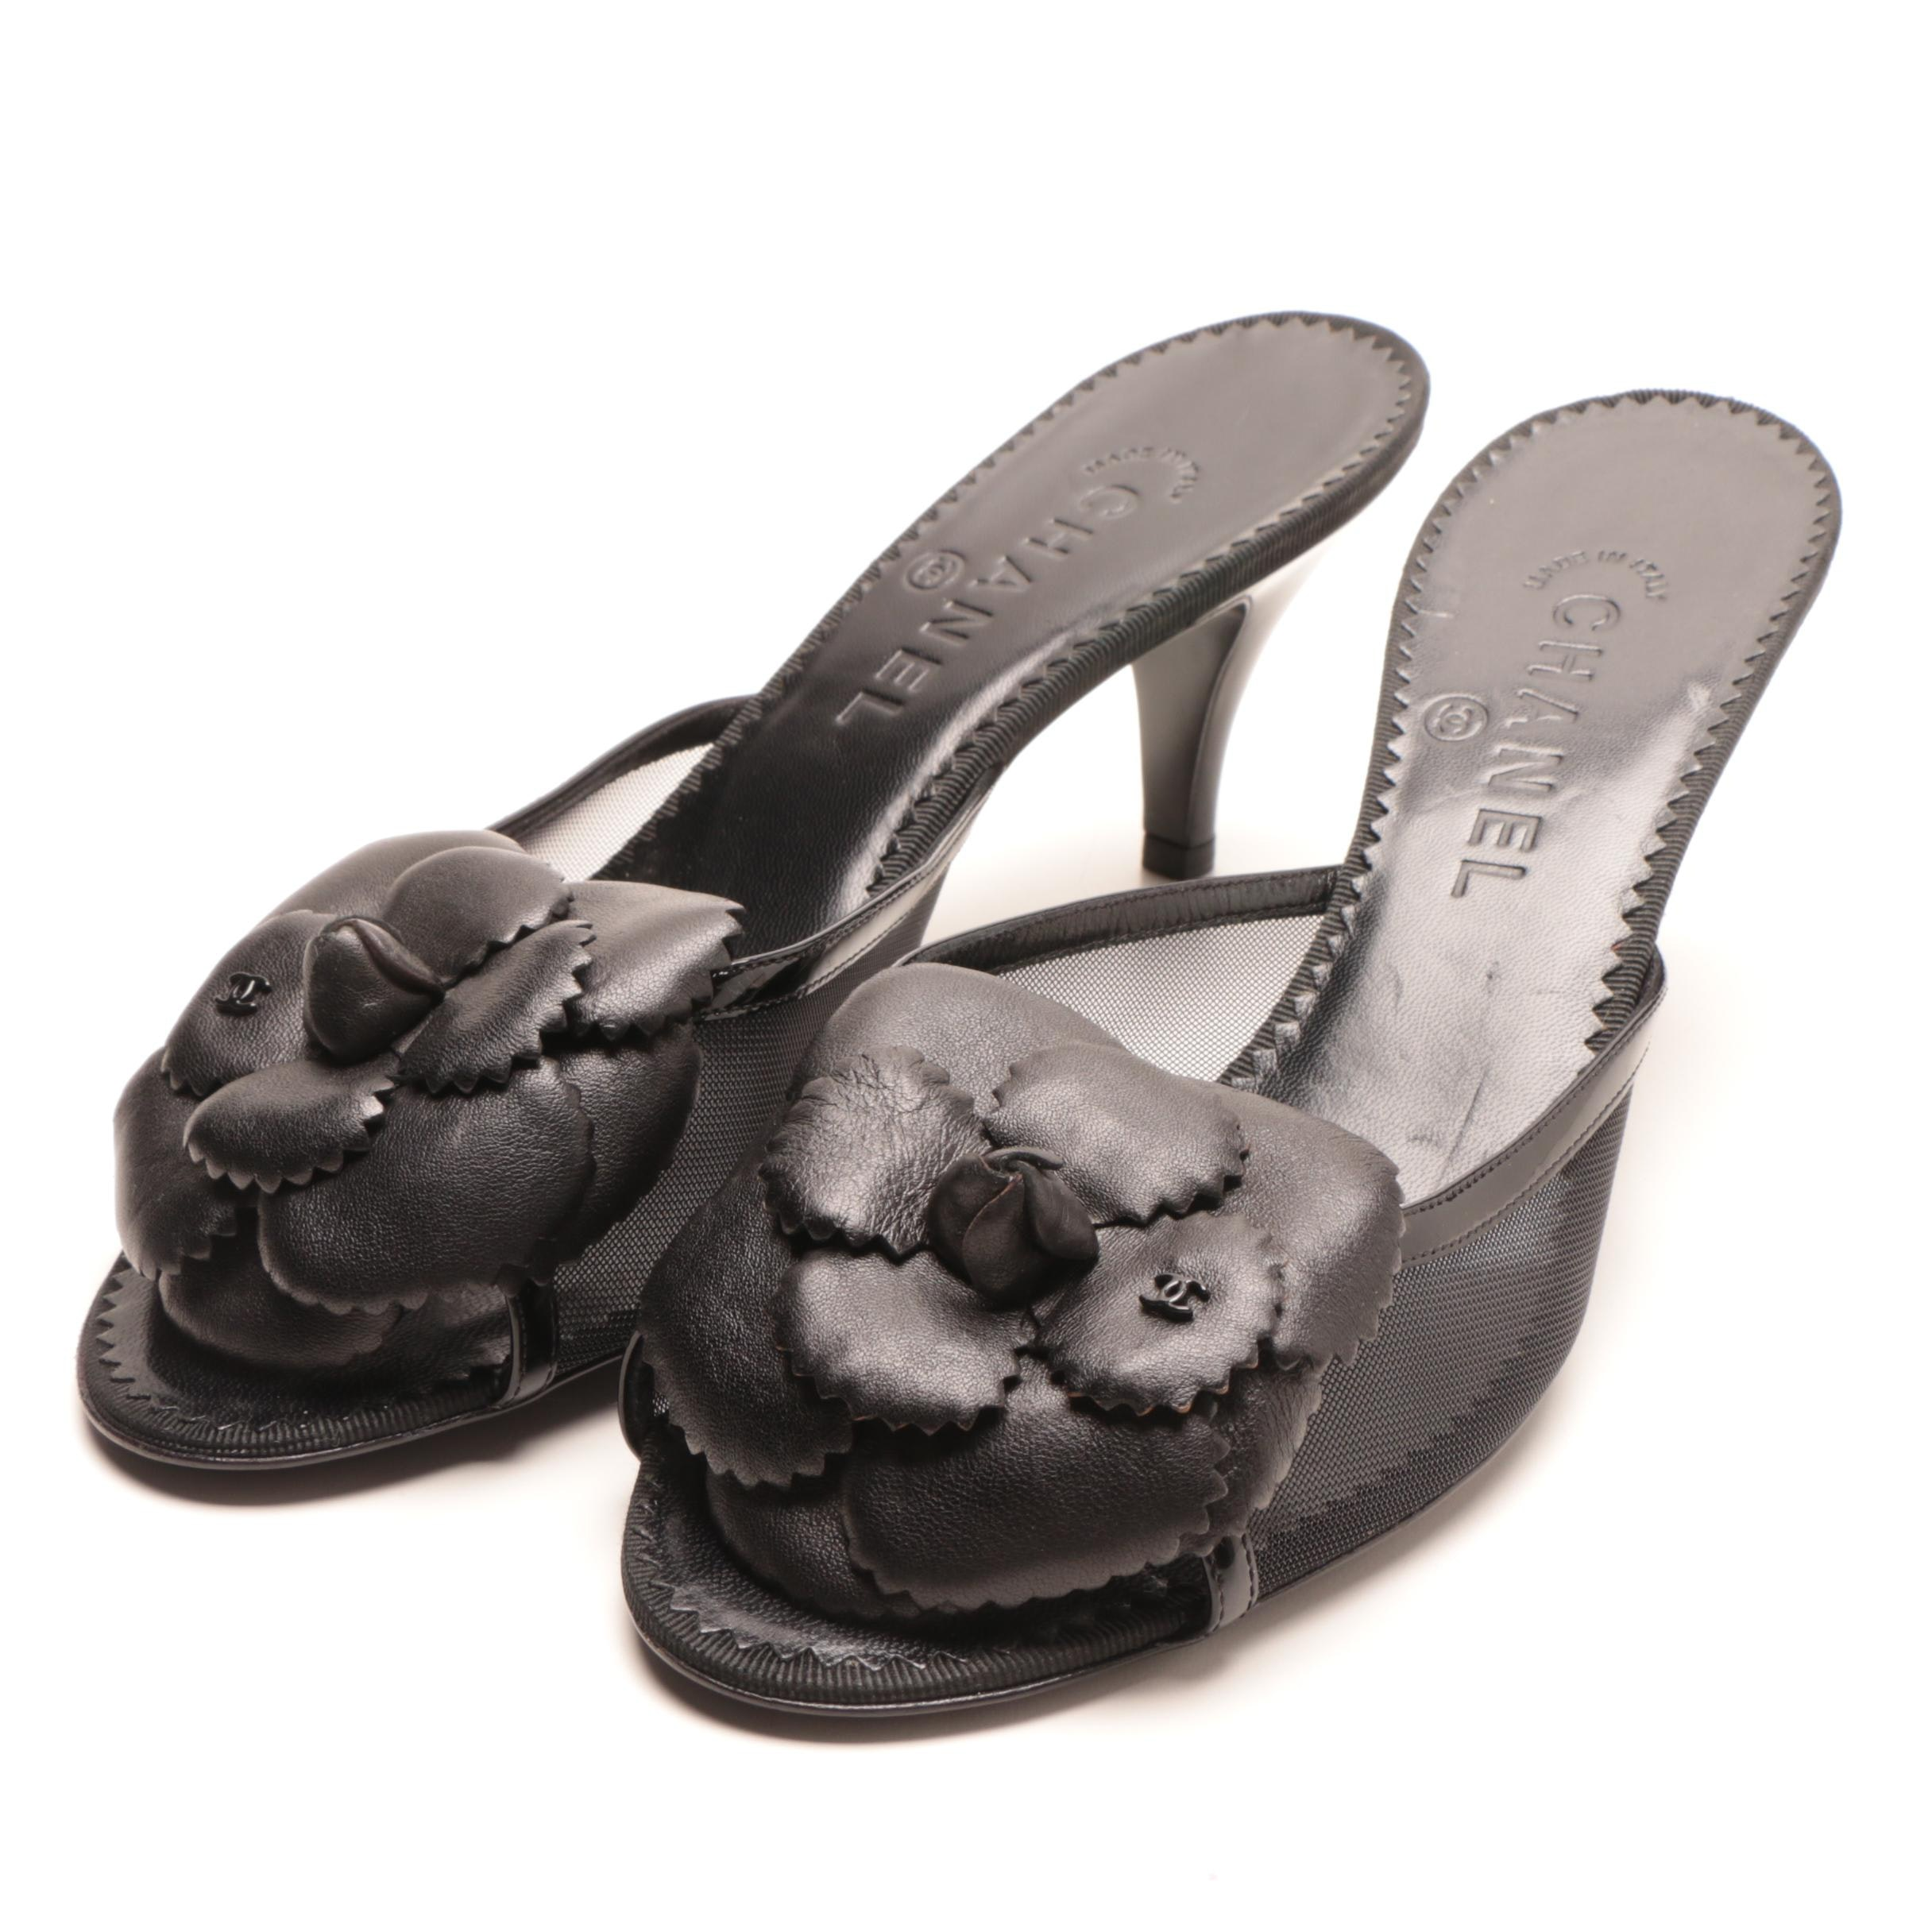 Chanel Black Heeled Sandals with Leather Floral Accents